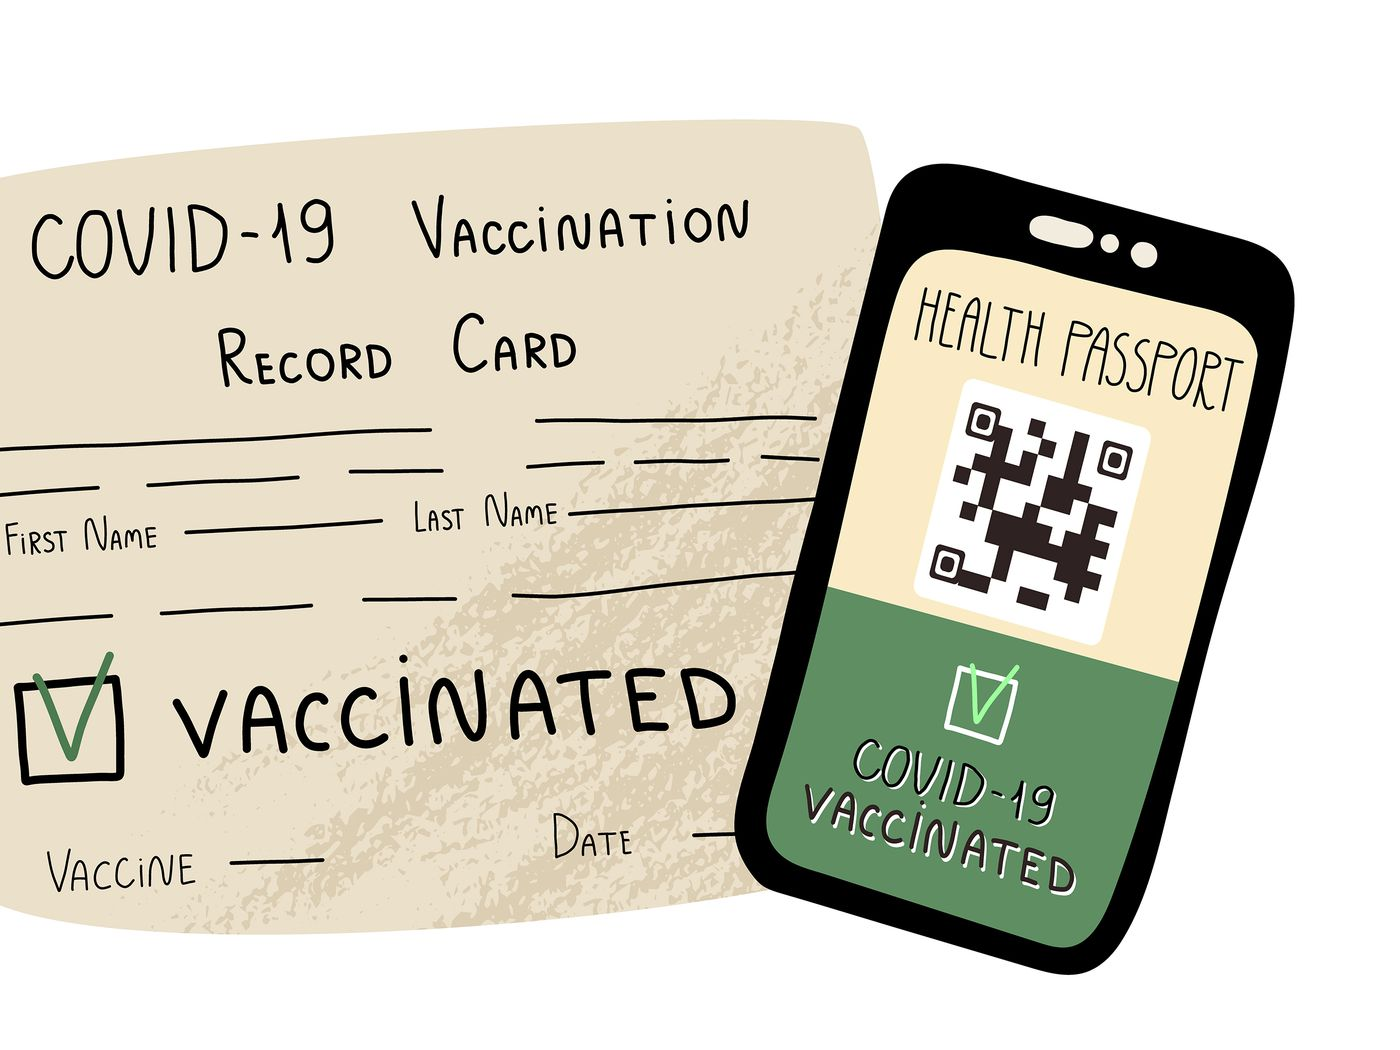 Los Angeles County to Mandate COVID-19 Vaccine Passports